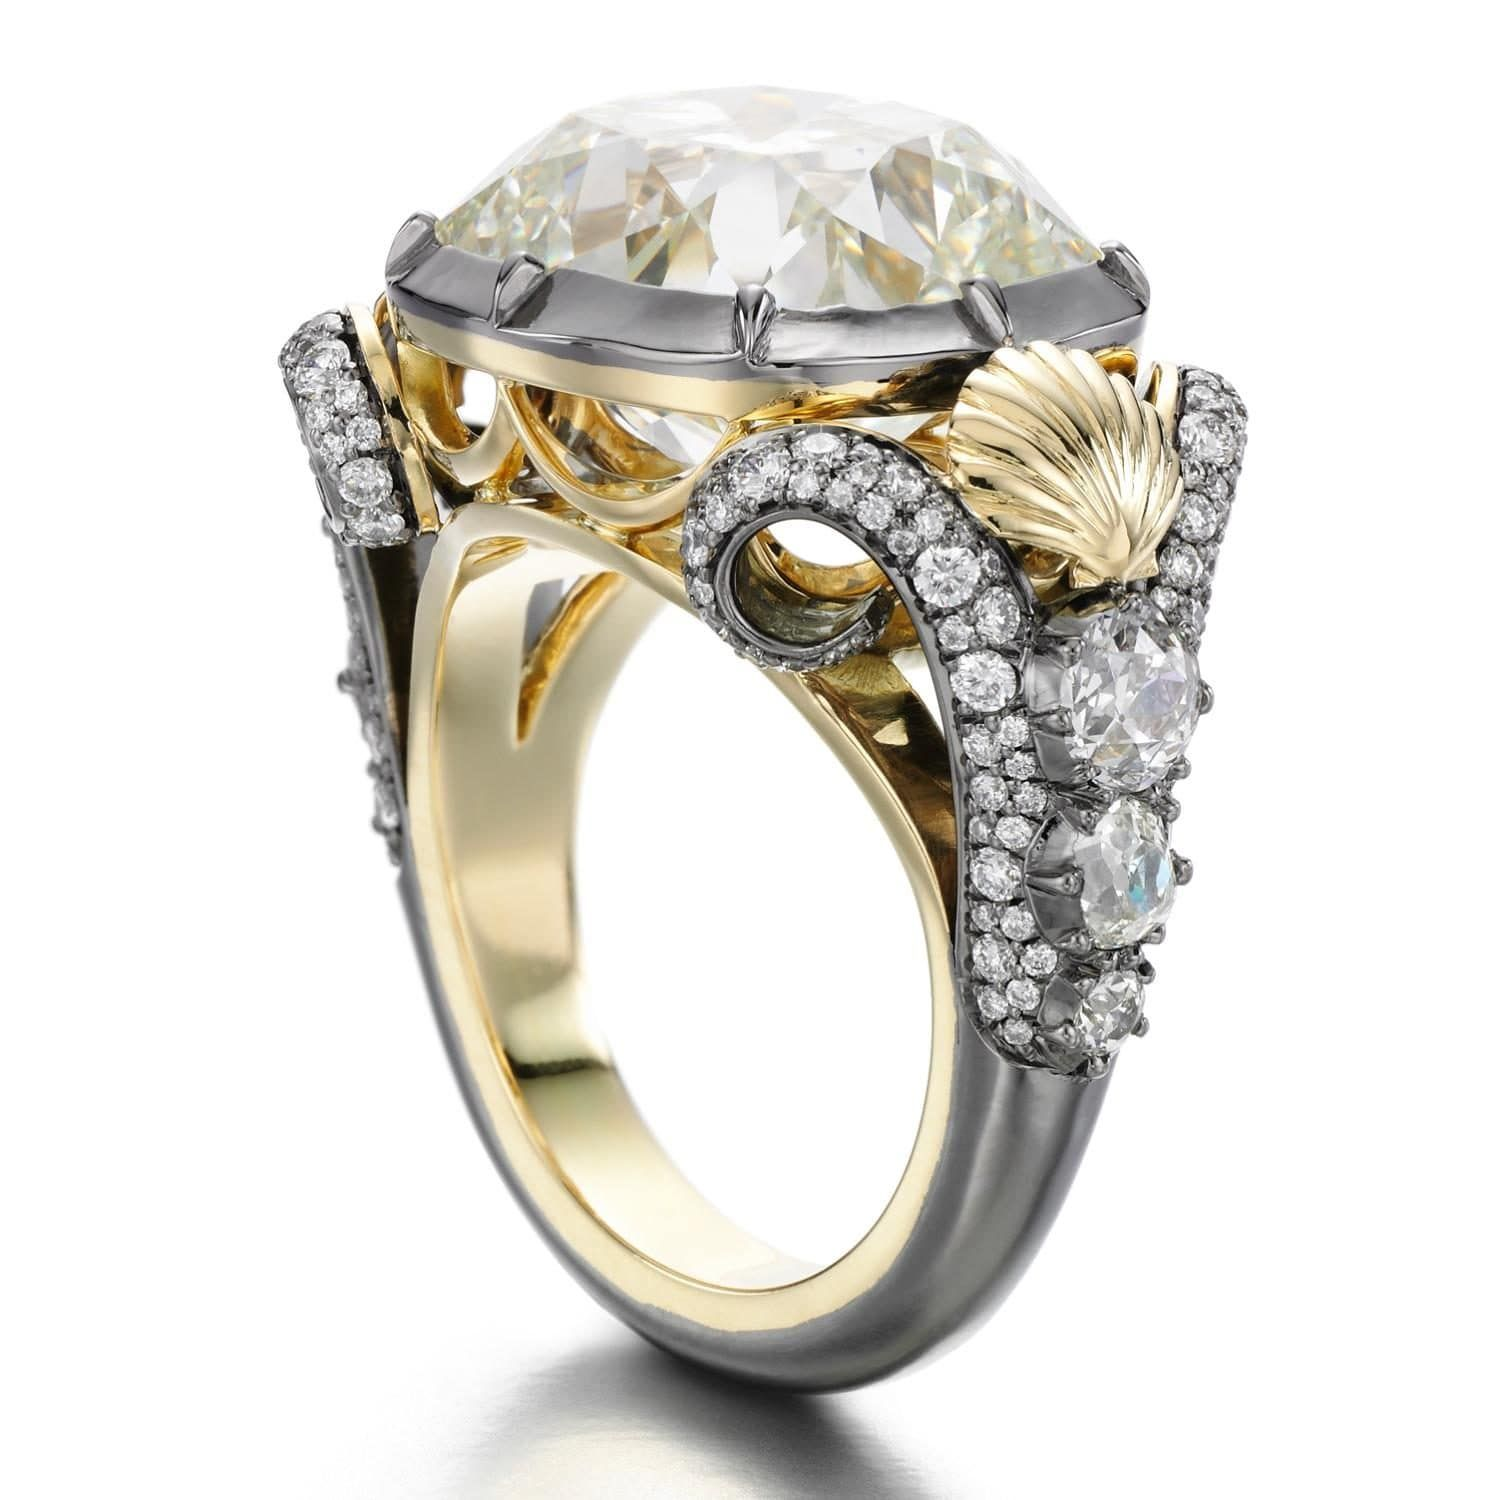 Jessica Mccormack The Little Mermaid Engagement Ring Poa